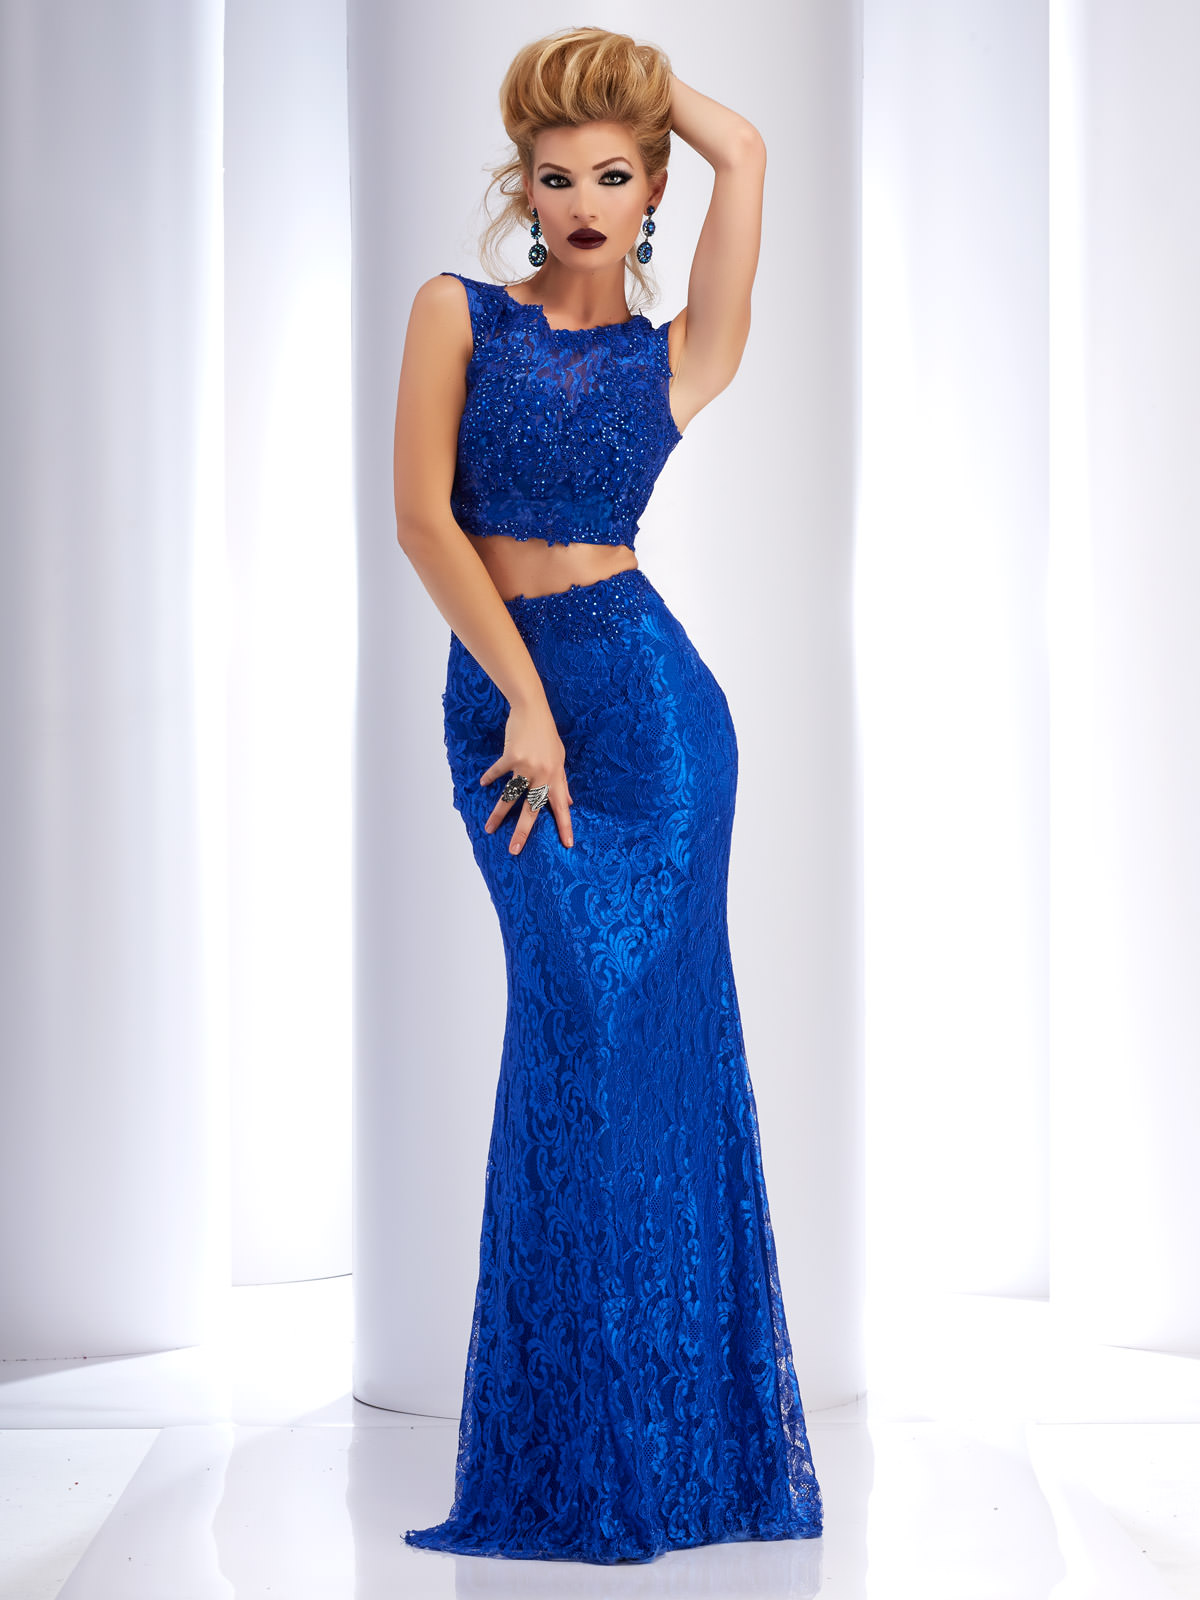 Top Dresses for Prom - Prom Dresses - Formal Gowns 2011 | Promgirl.net